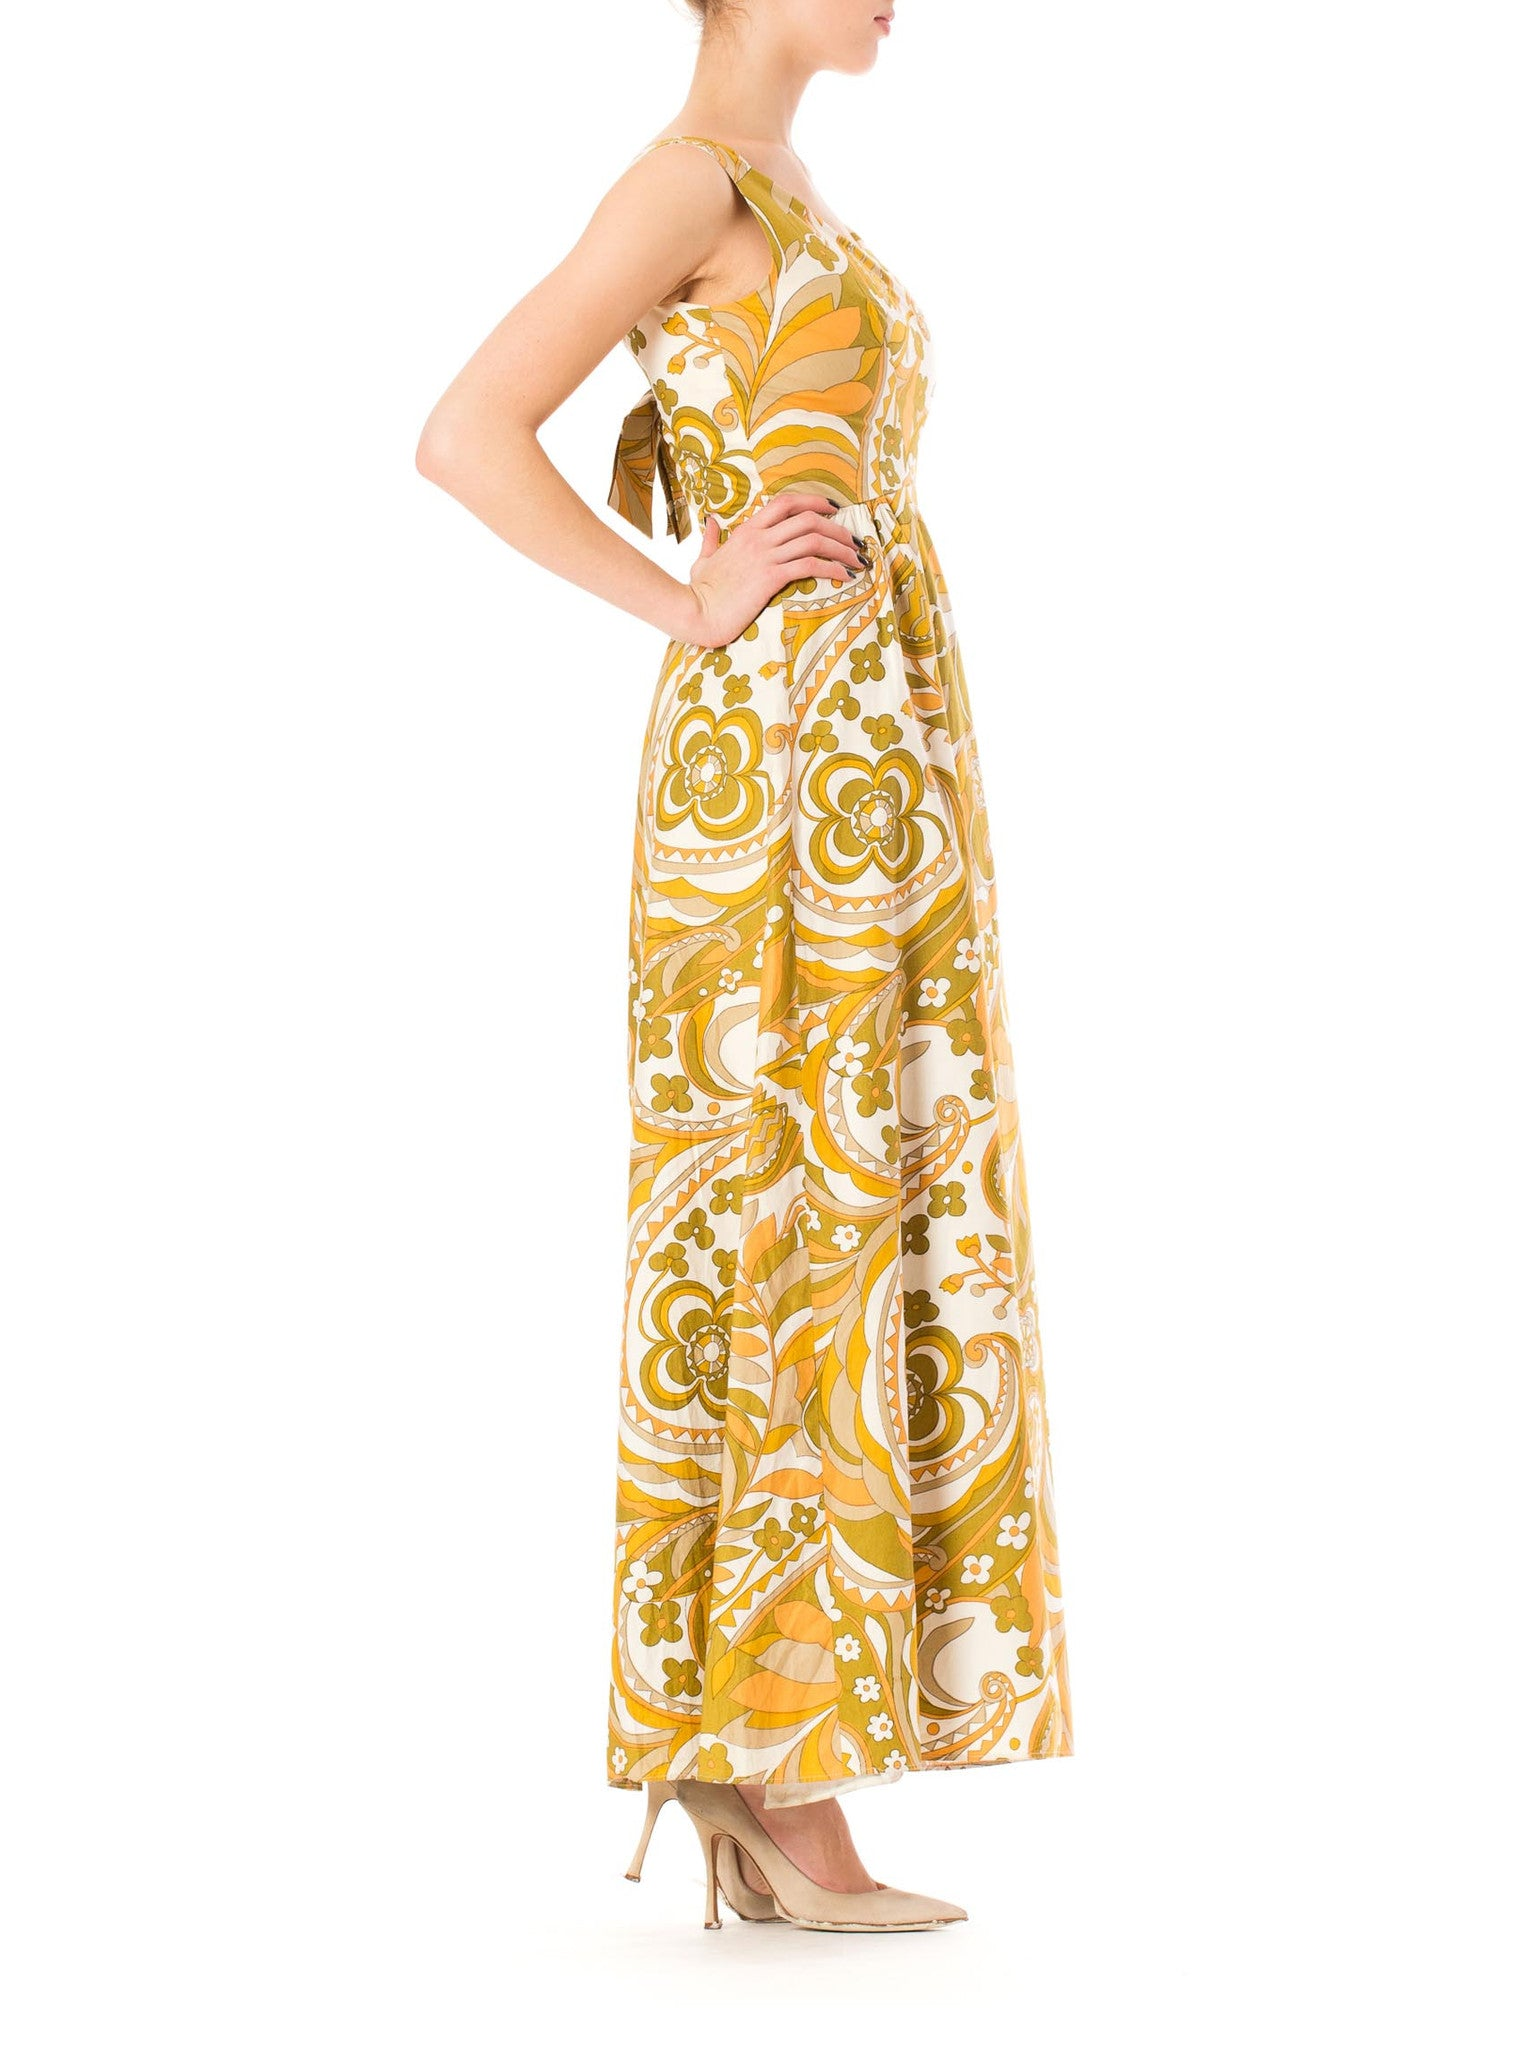 1960S JEAN ALLEN Yellow Cotton Pucci Style Psychedelic Printed Maxi Dress , Fully Lined